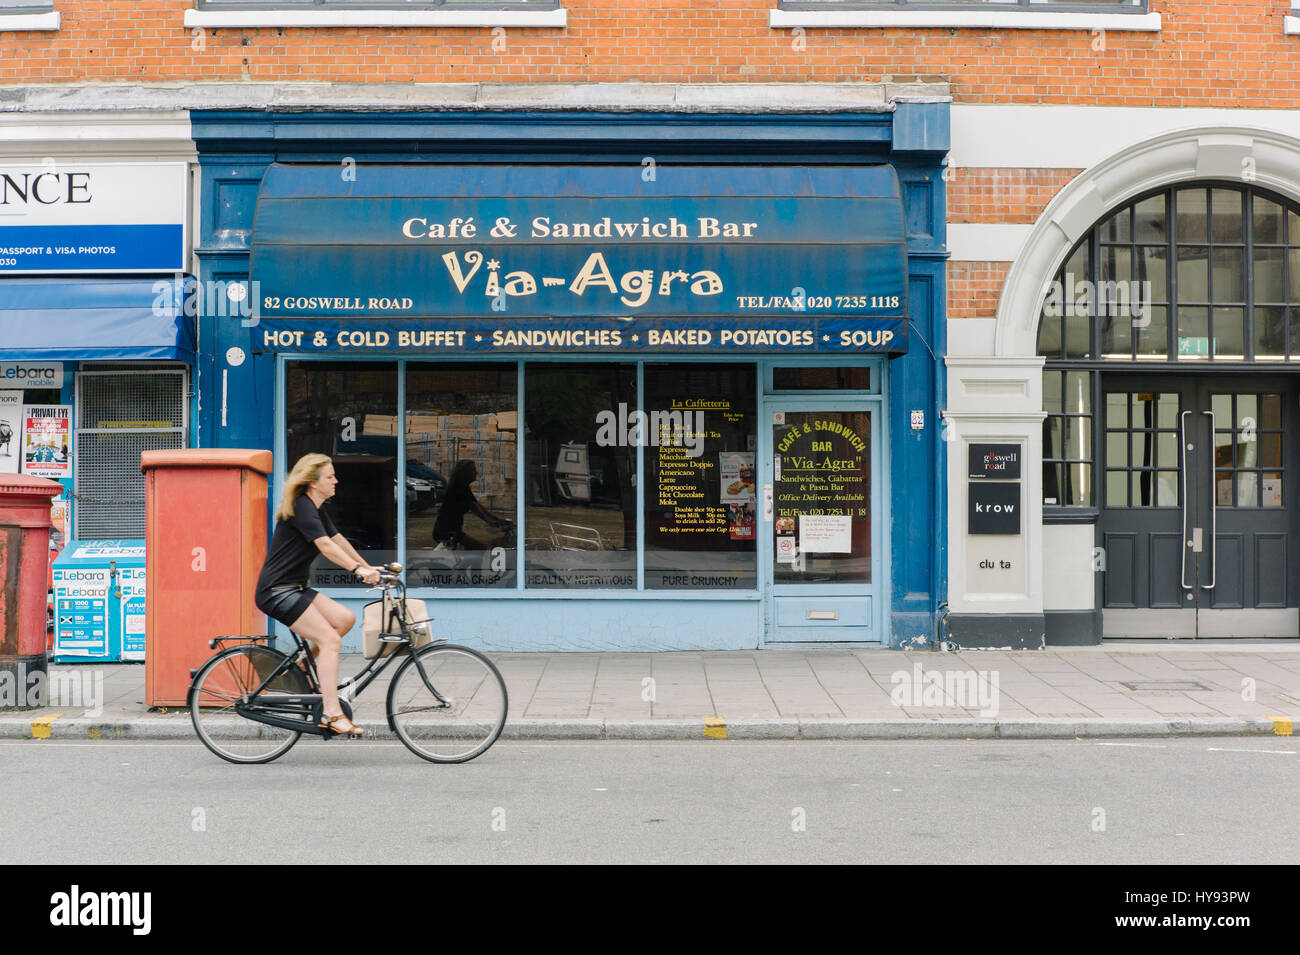 Young woman in skirt on bike, on a city street. - Stock Image